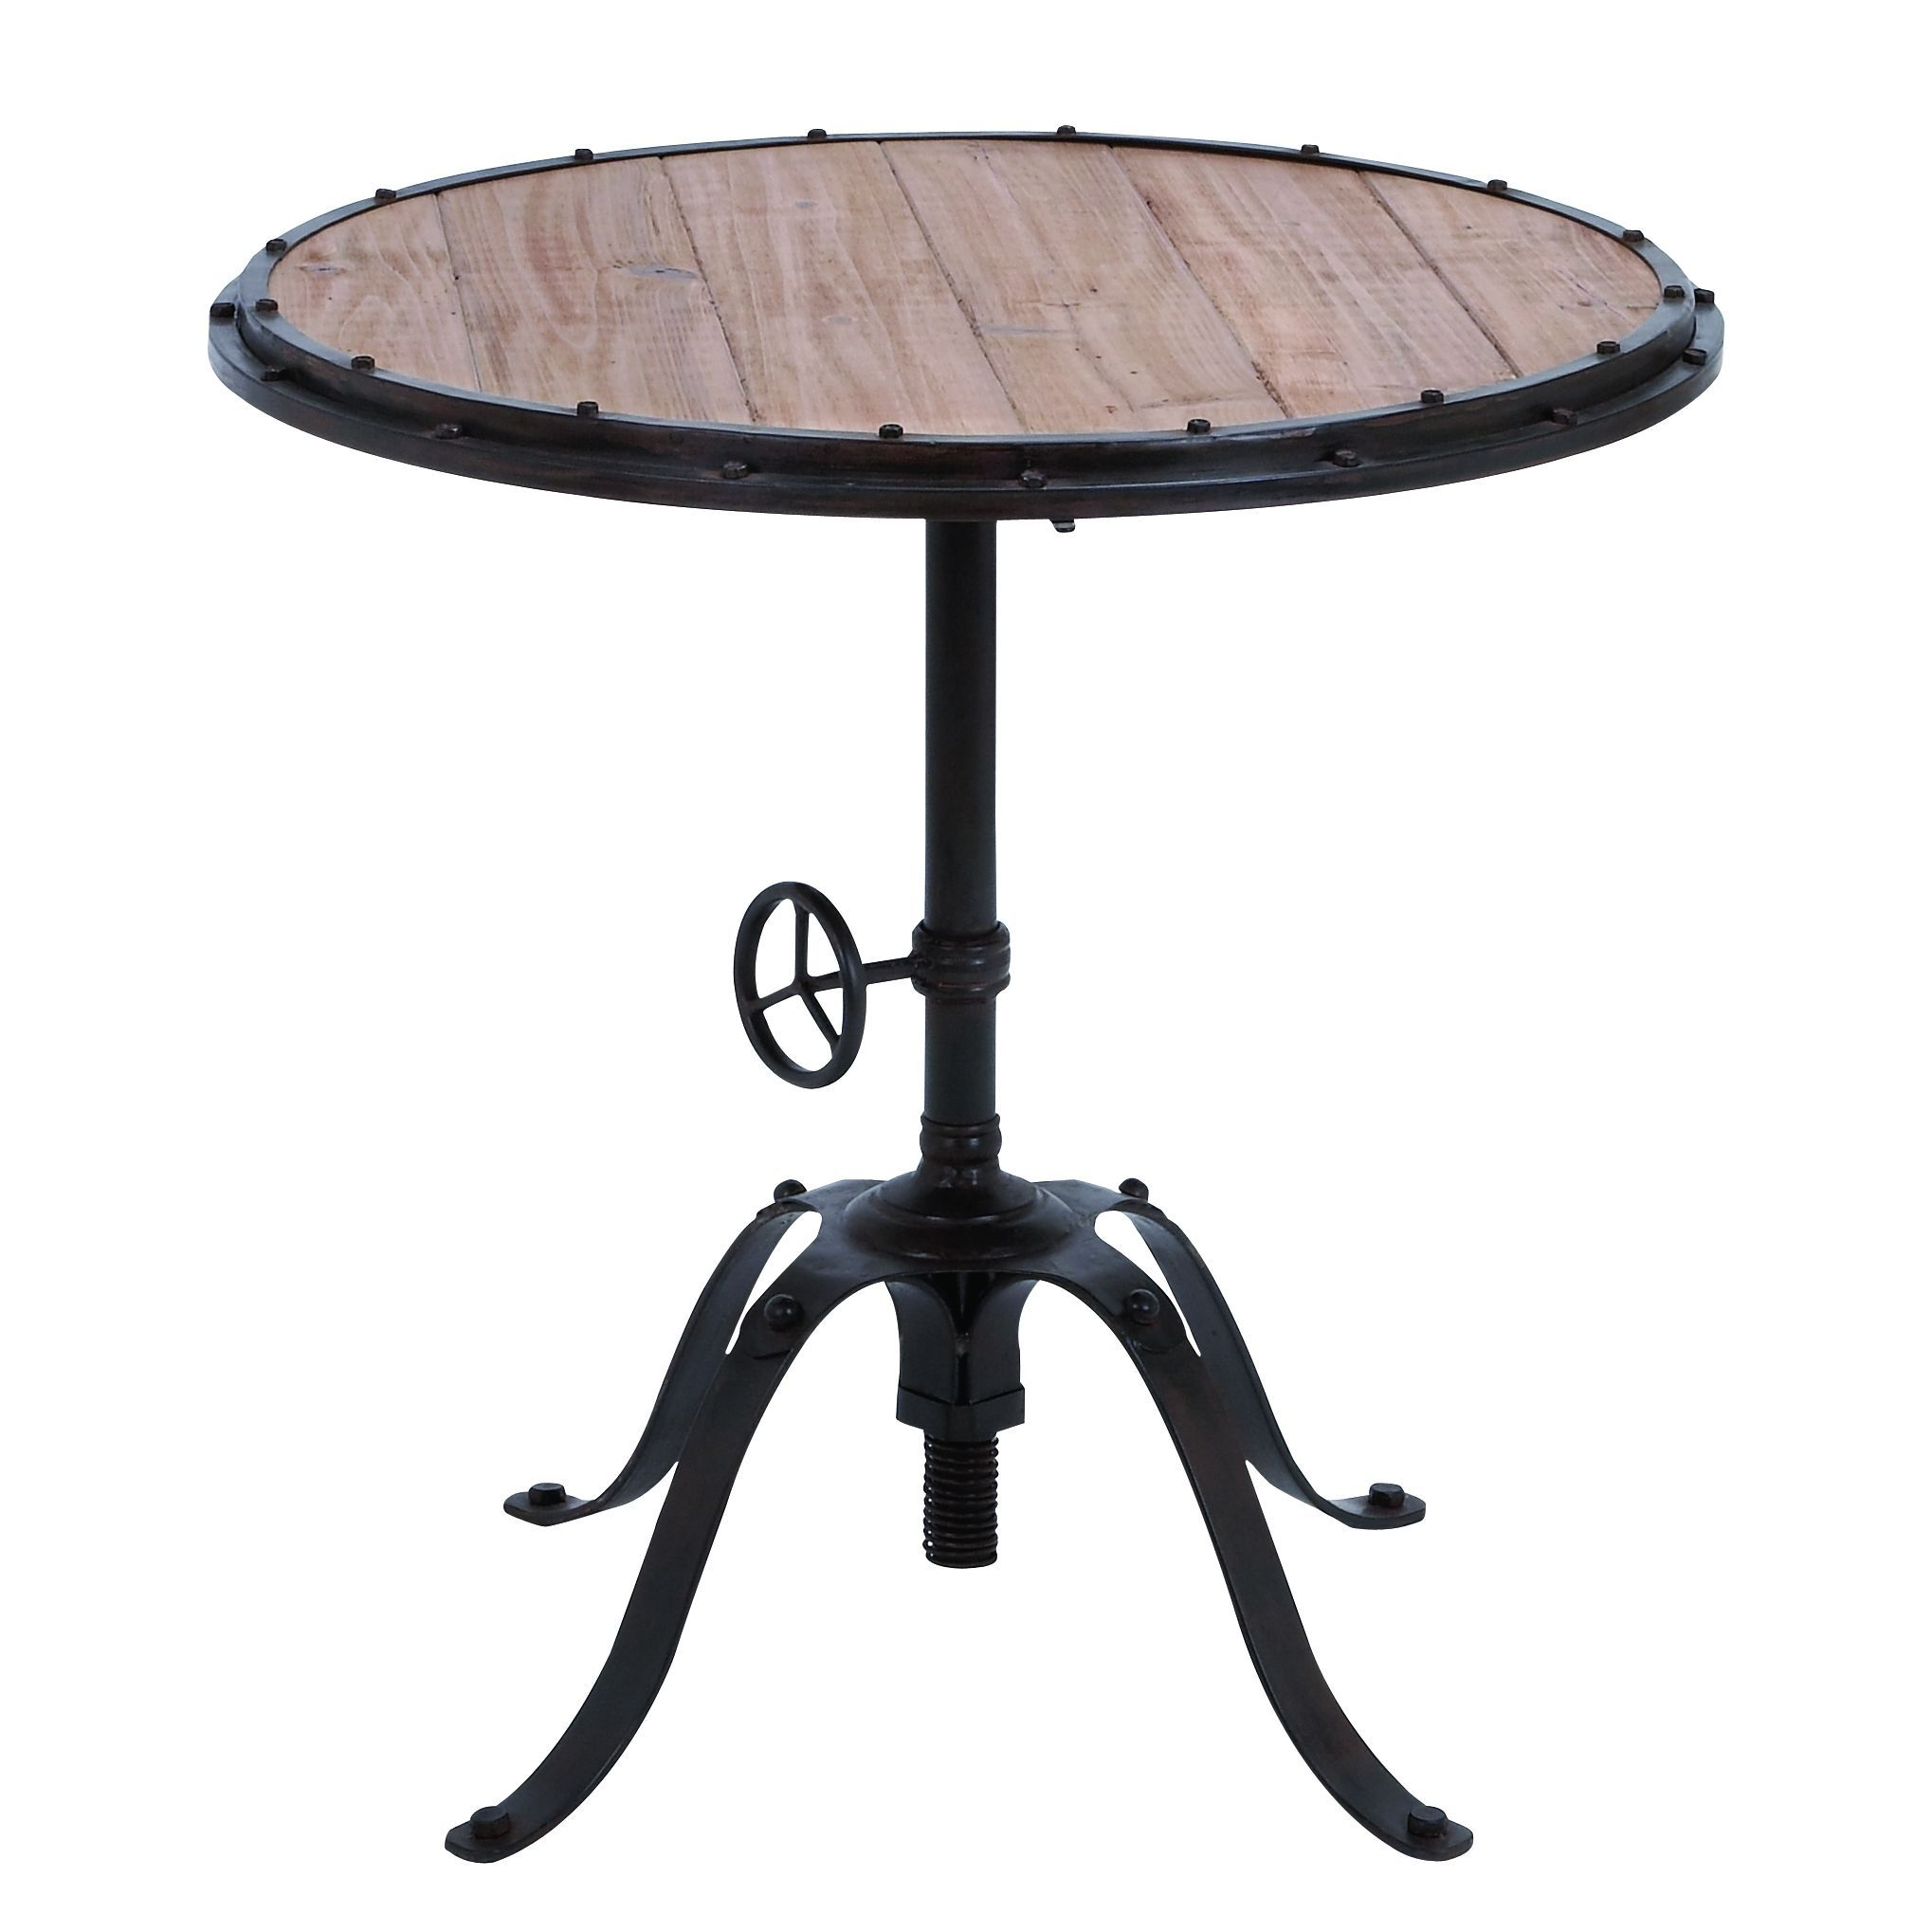 accent collection black distressed metal and wood inch round table studio teal blue end coffee cloth pedestal side patio chairs decorative accessories steel velvet chair with arms